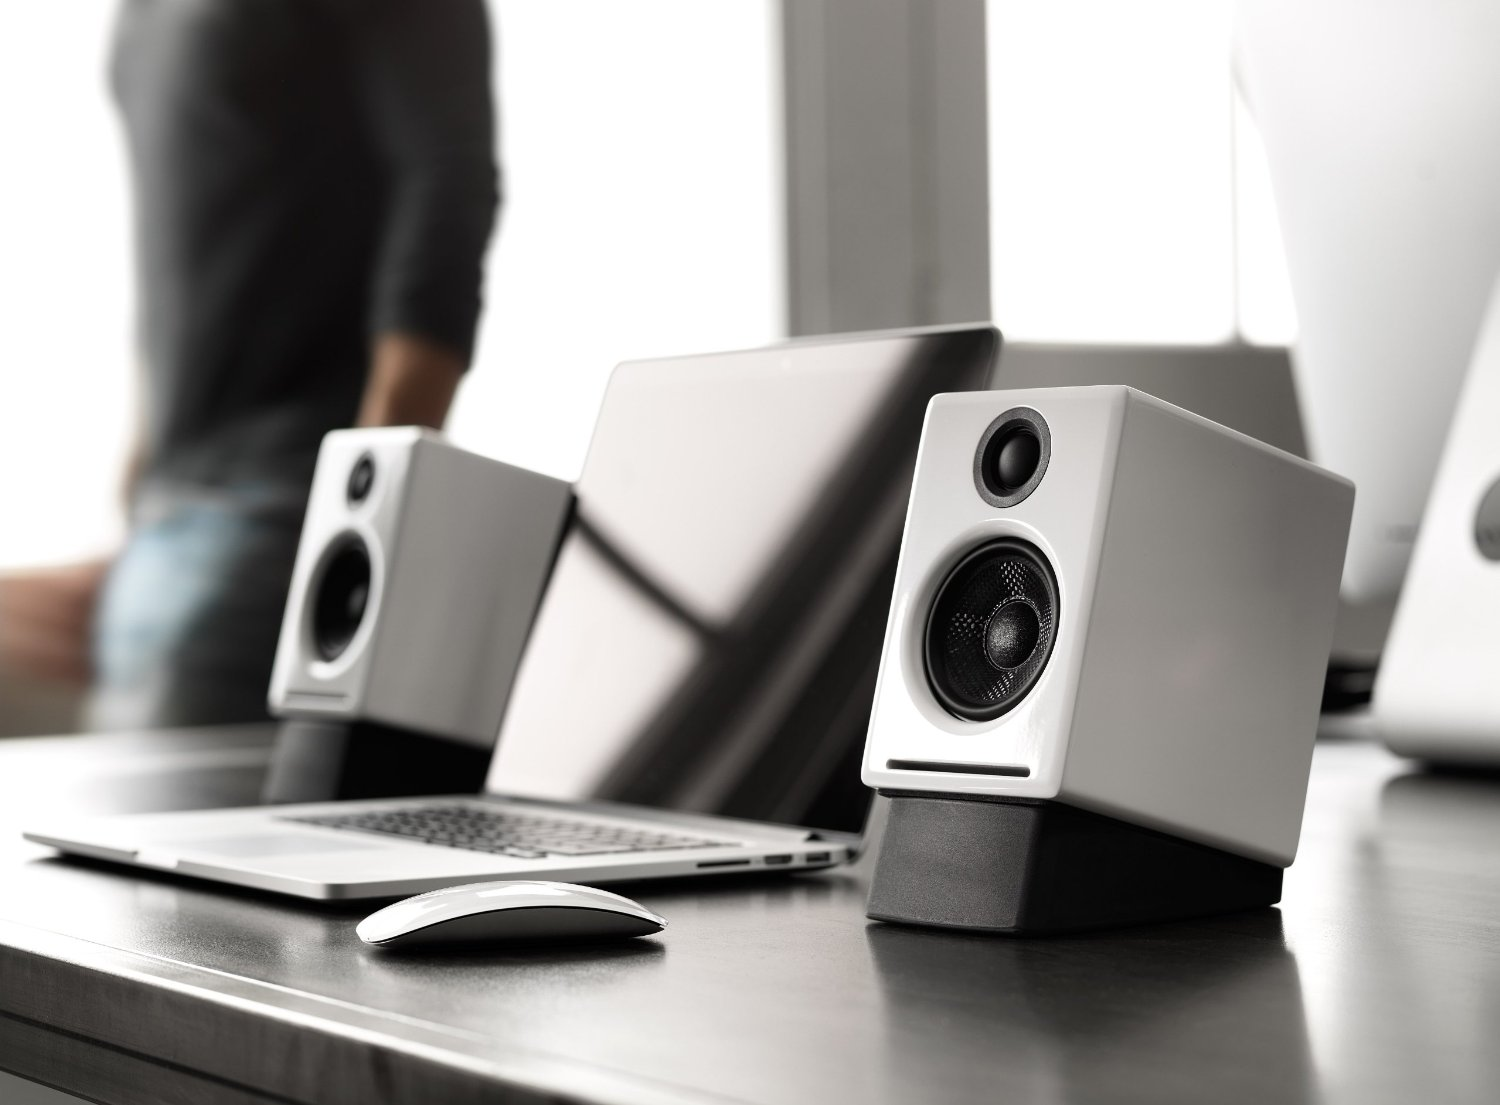 A2+ Premium Powered Desktop Speakers